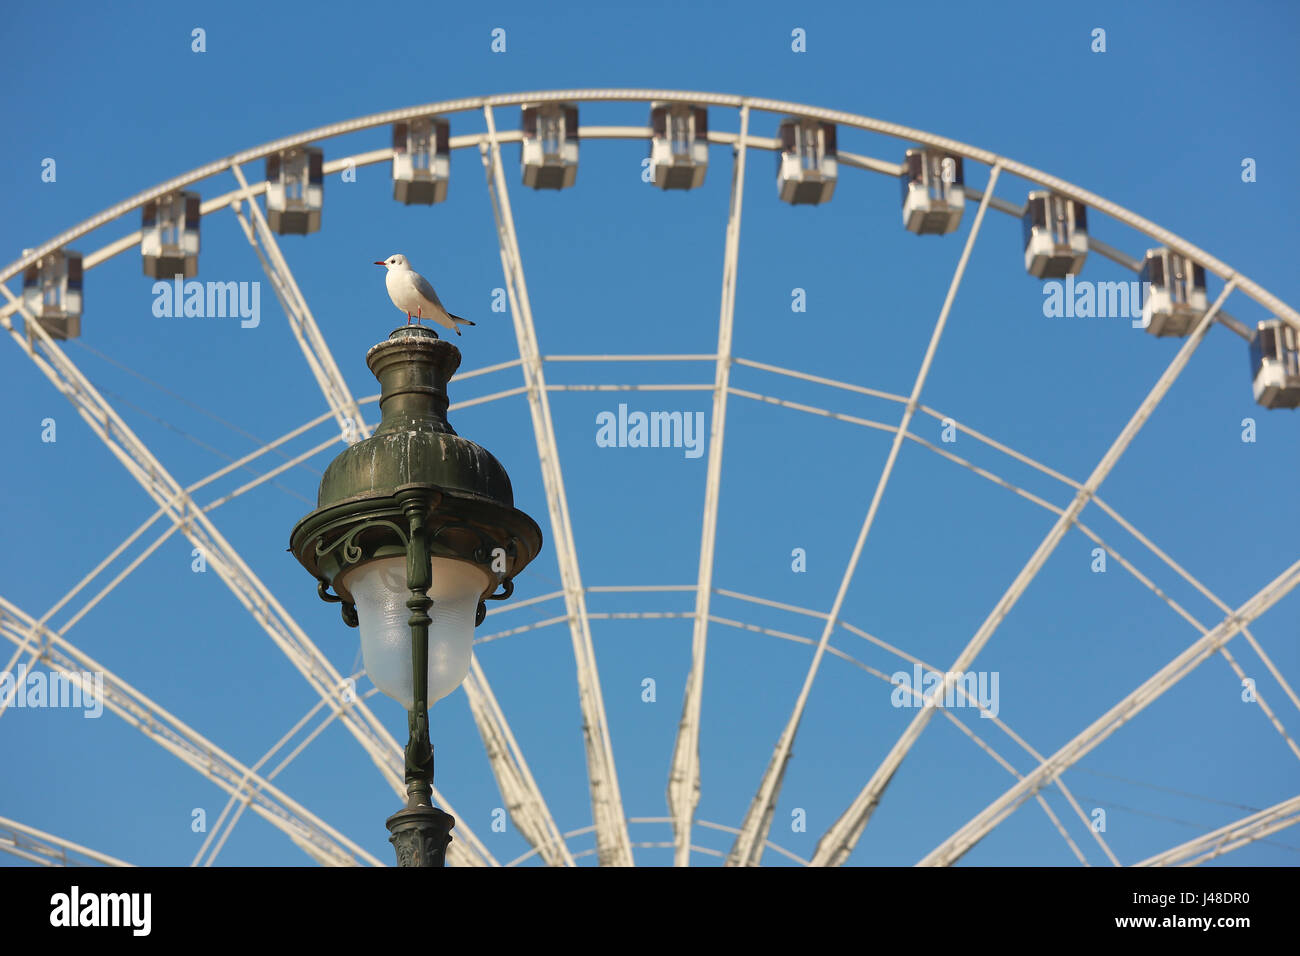 Ferris wheel and the street lamp in Paris.A seagull sits on the lamp. - Stock Image